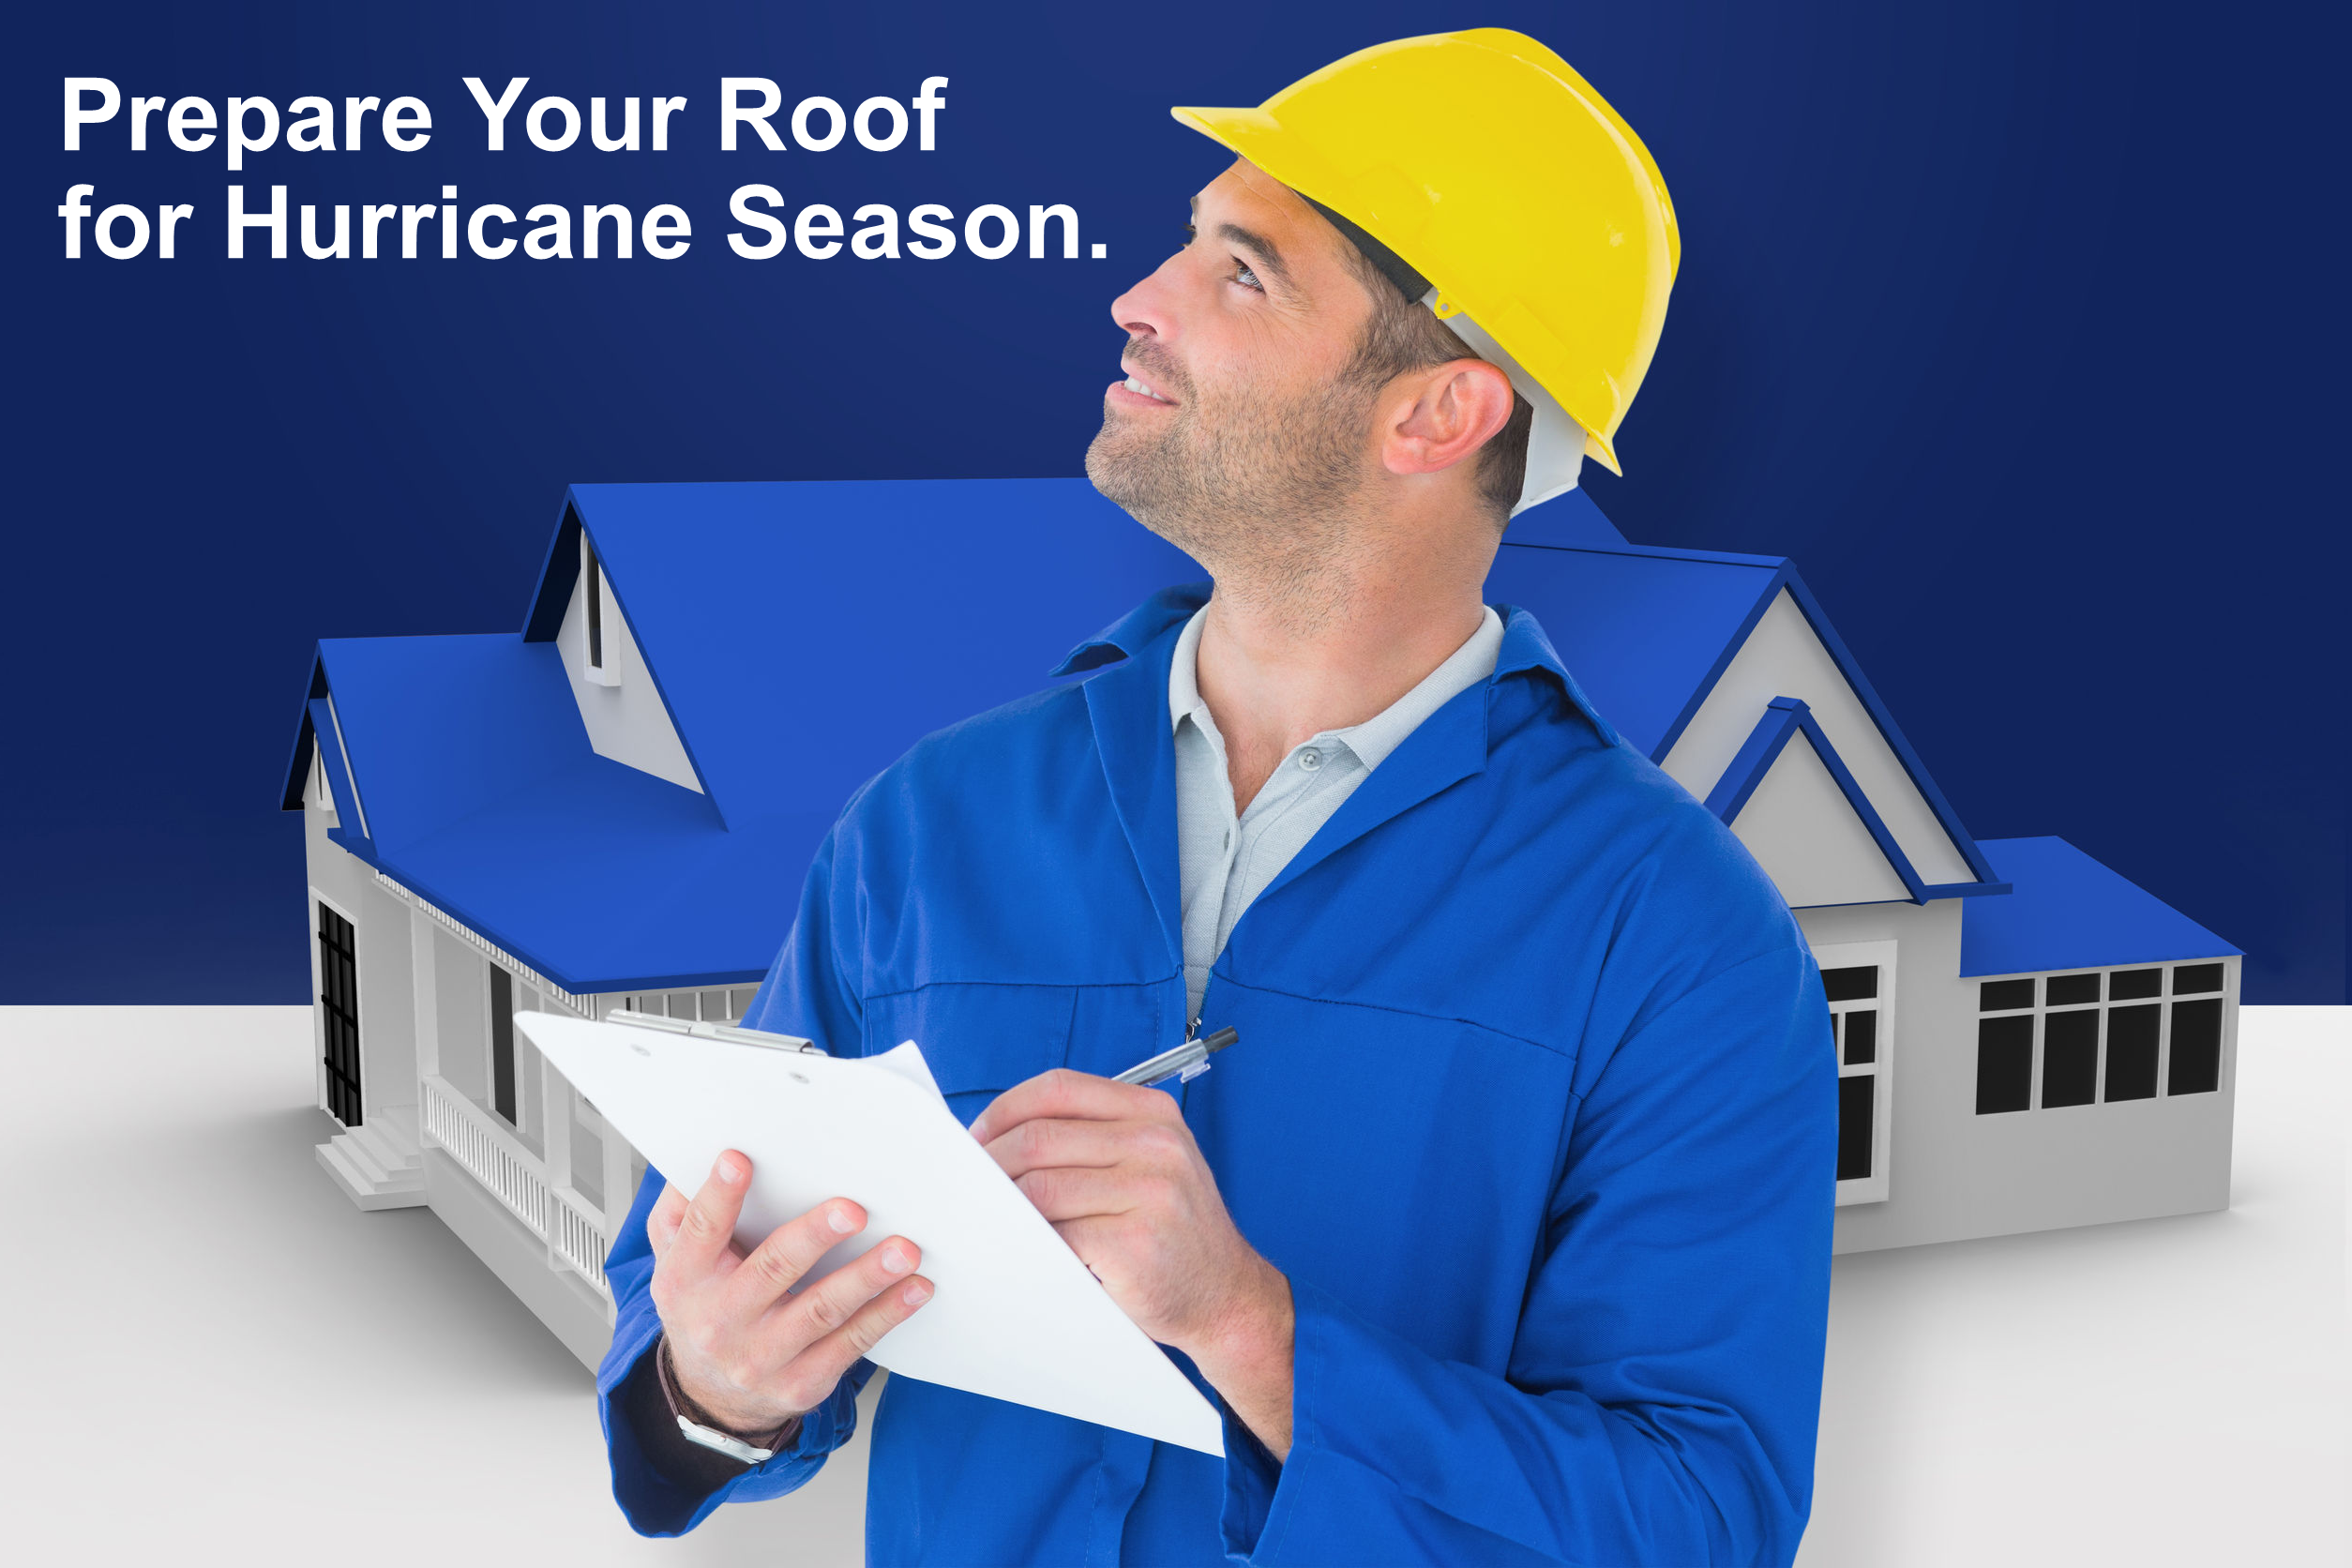 Prepare Your Roof for Hurricane Season with a Roof Inspection